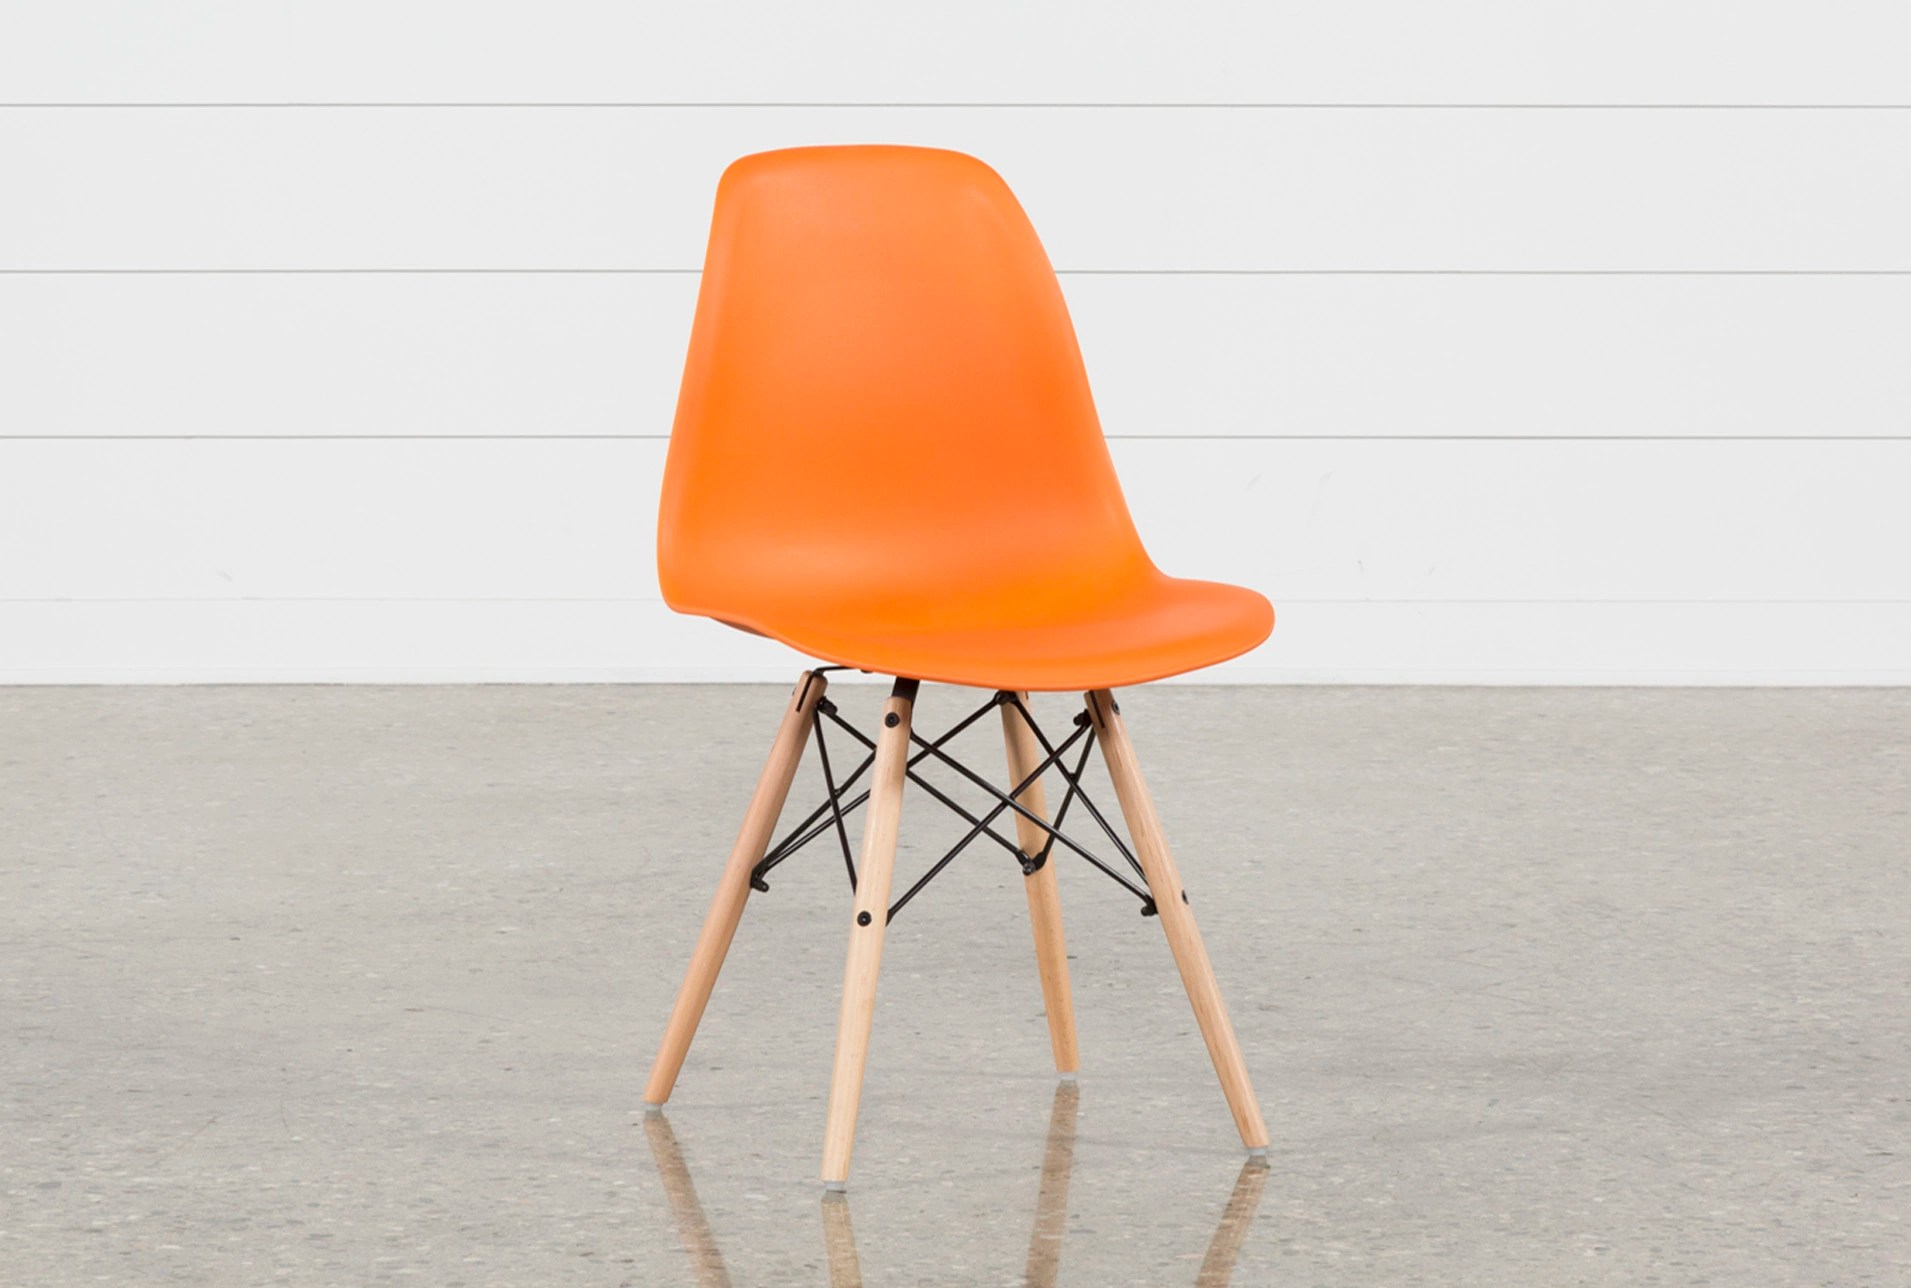 orange side chair target lawn chairs plastic cole ii living spaces qty 1 has been successfully added to your cart